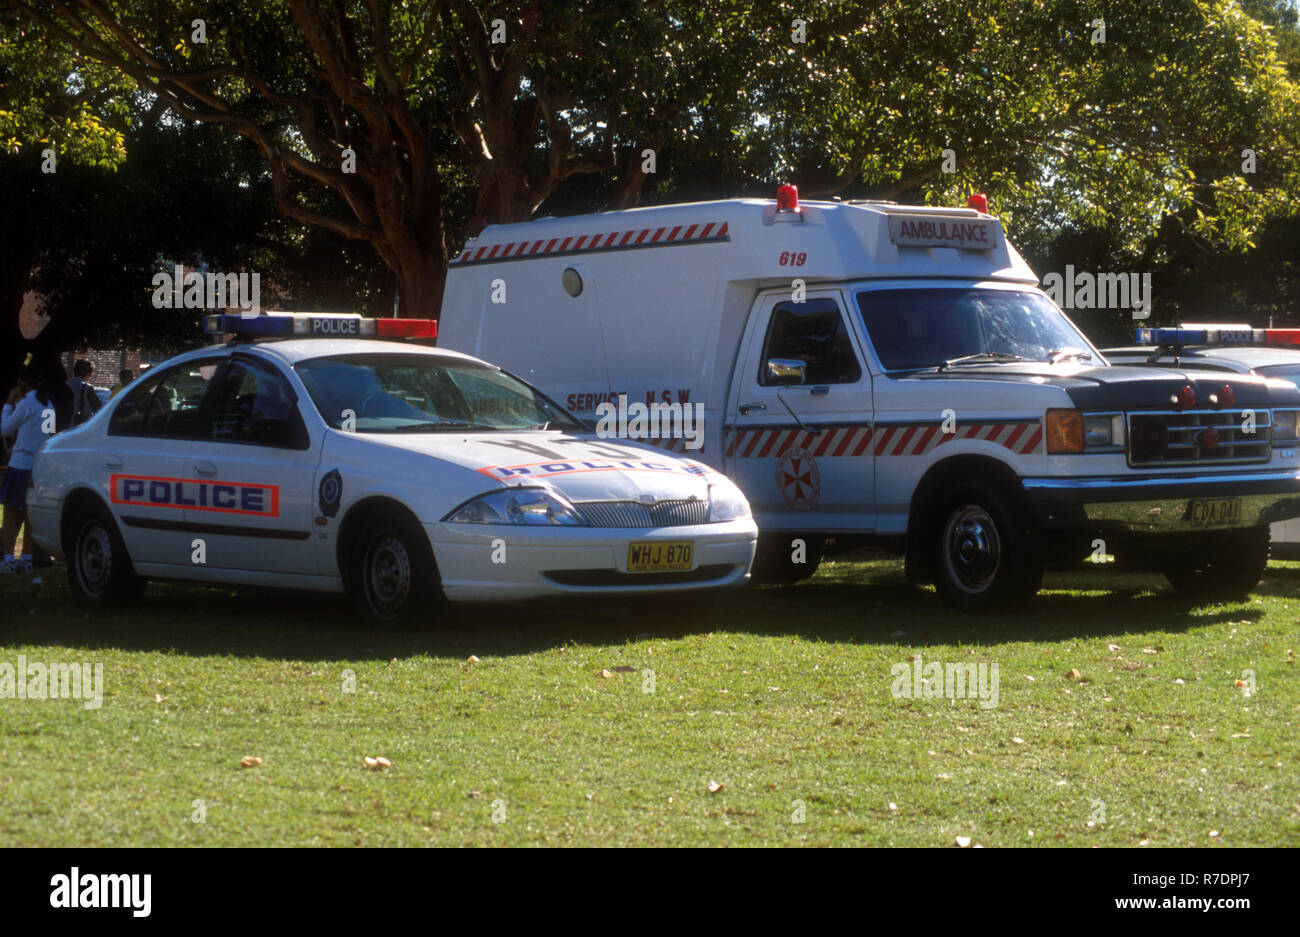 PARKED EMERGENCY SERVICES VEHICLES, NEW SOUTH WALES AMBULANCE PARKED ALONGSIDE A POLICE CAR AT OUTDOOR ENTERTAINMENT AREA, AUSTRALIA - Stock Image